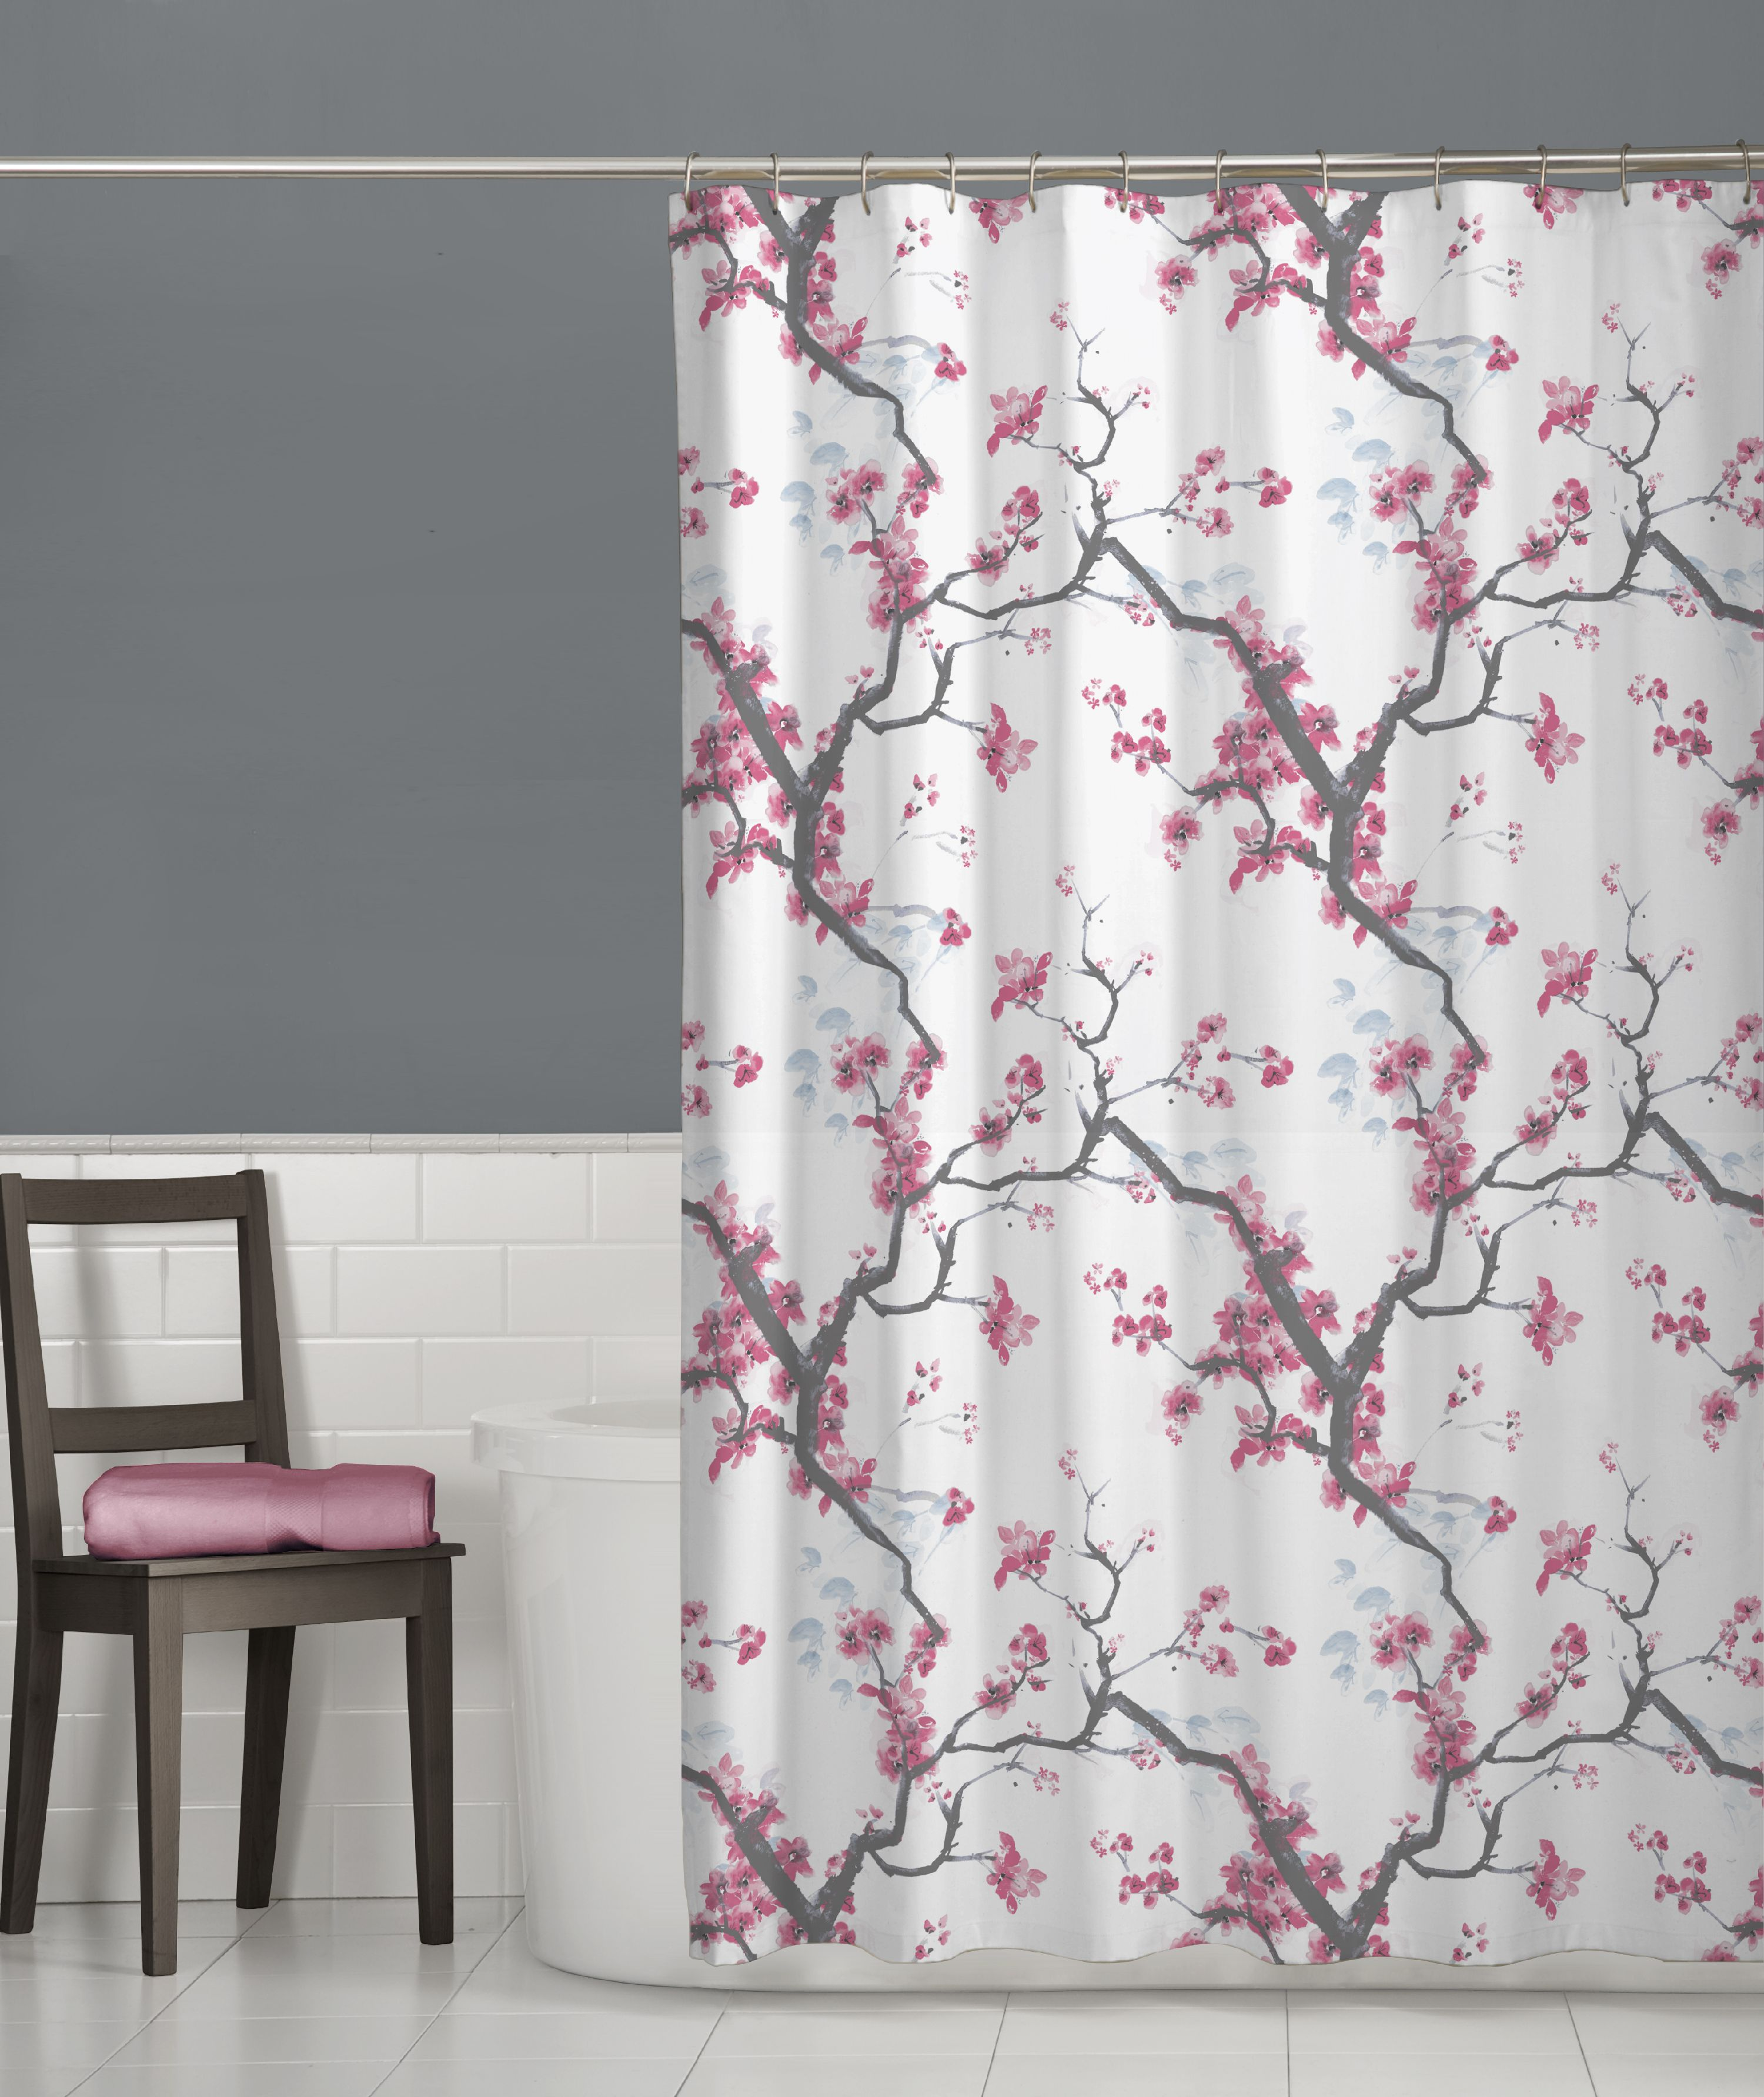 Maytex Cherry Blossom Floral Fabric Shower Curtain Pink